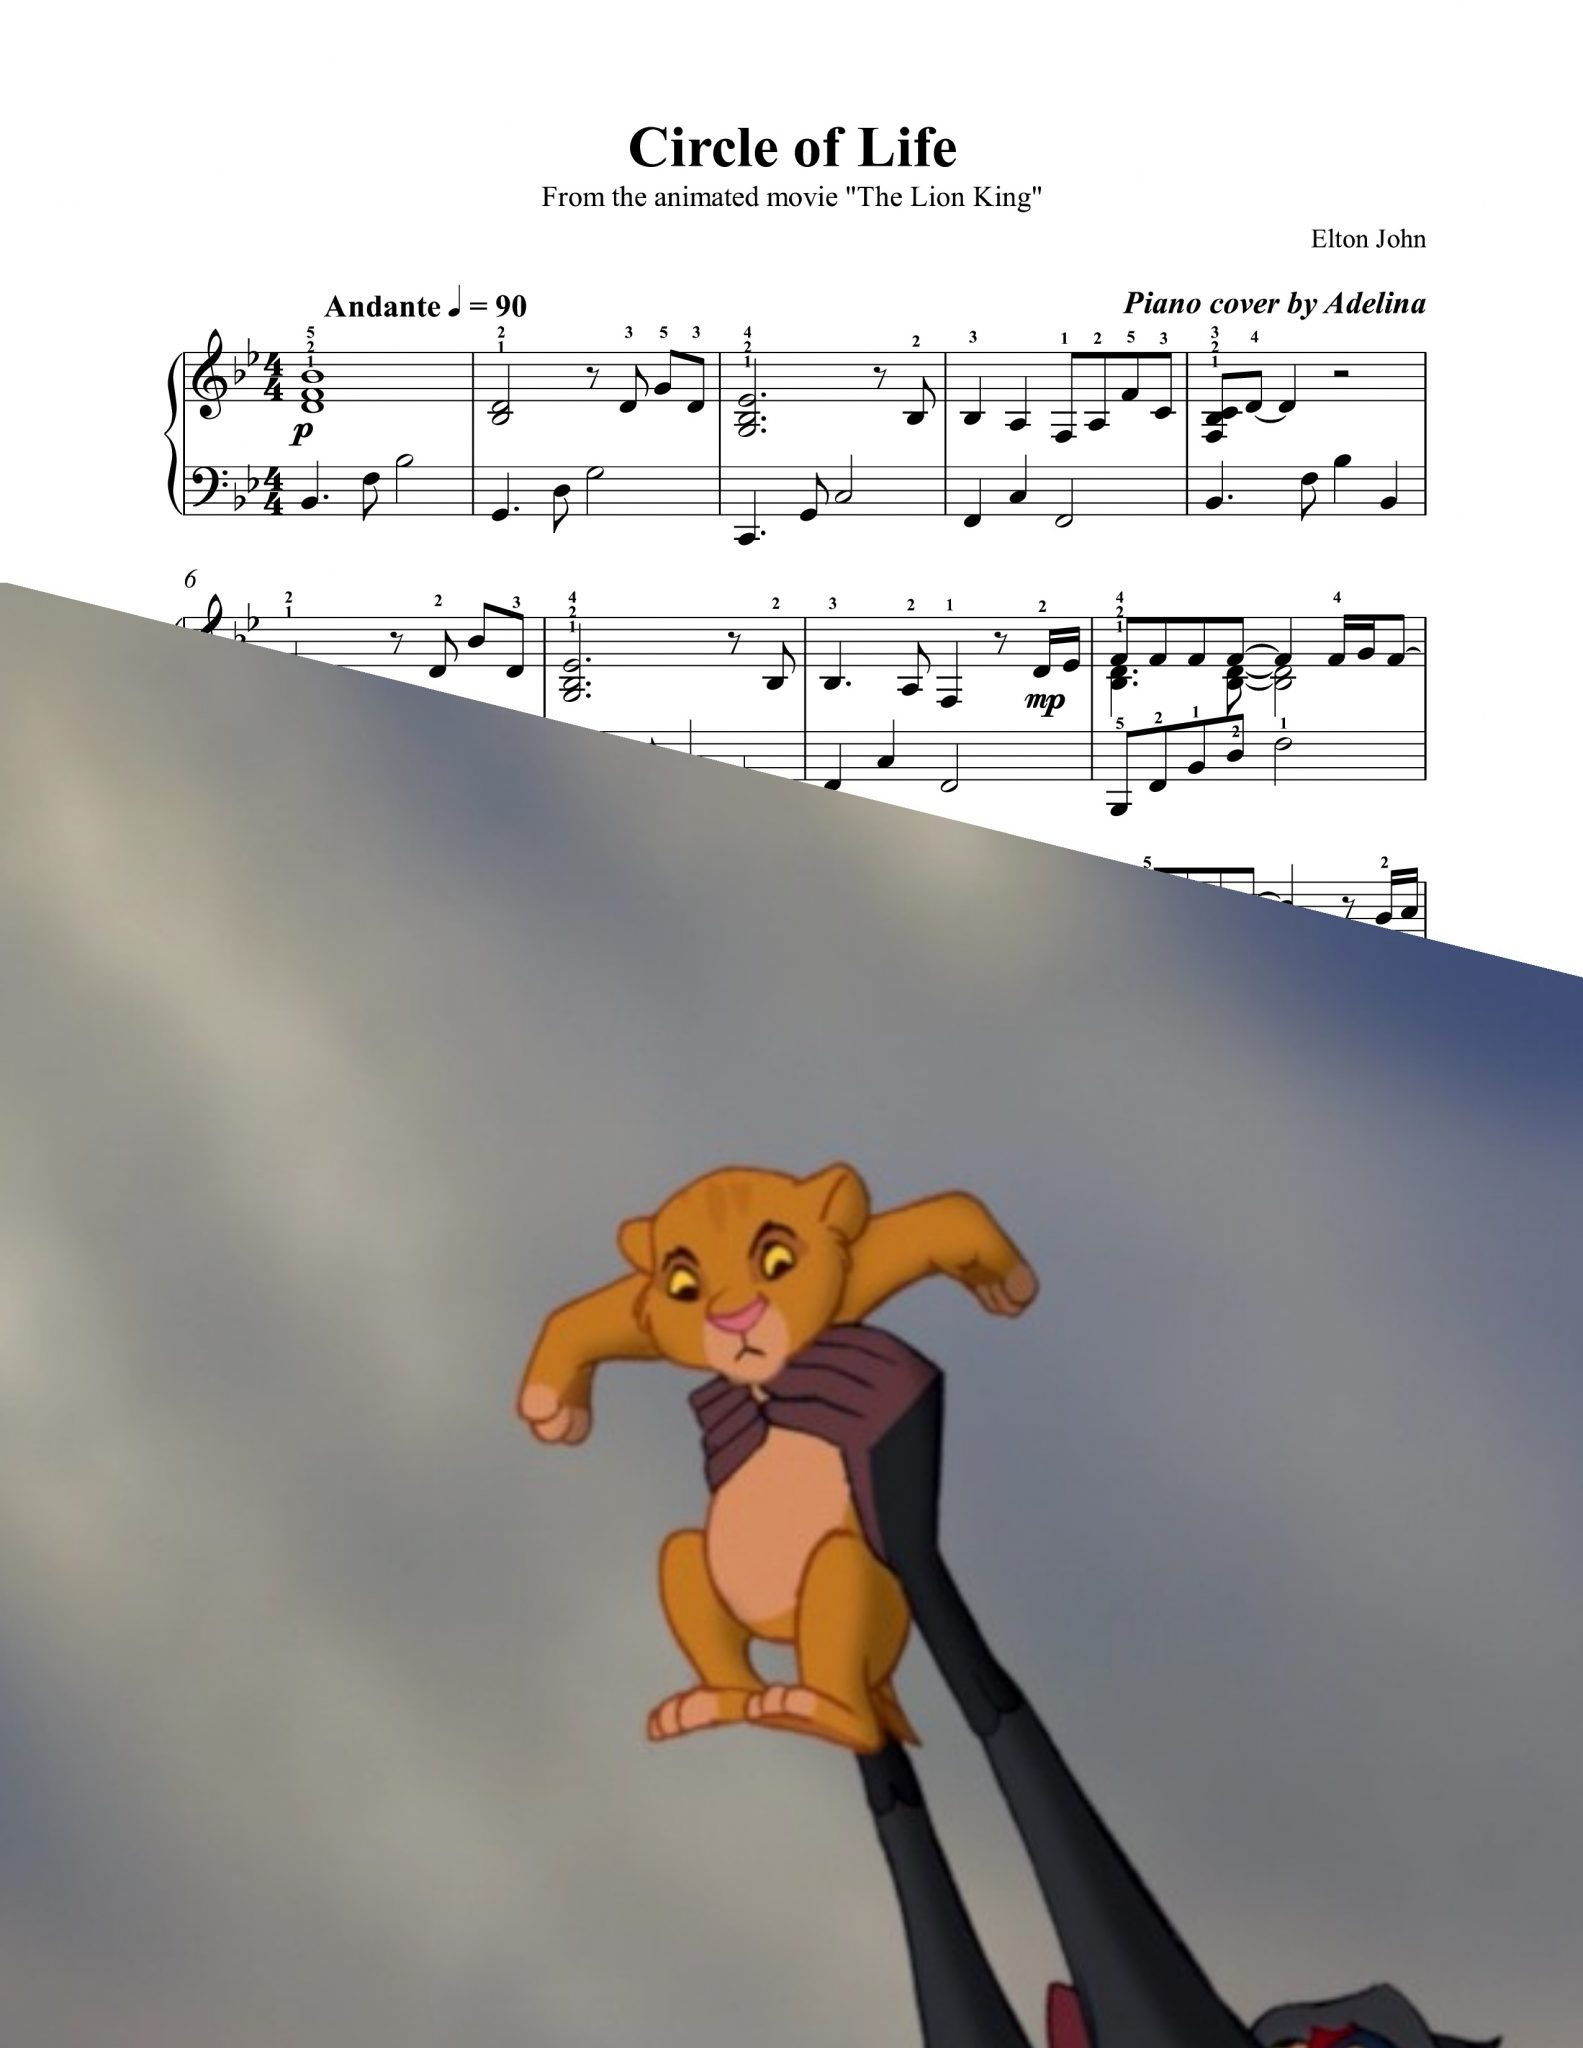 Lyrics for the lion king opening song